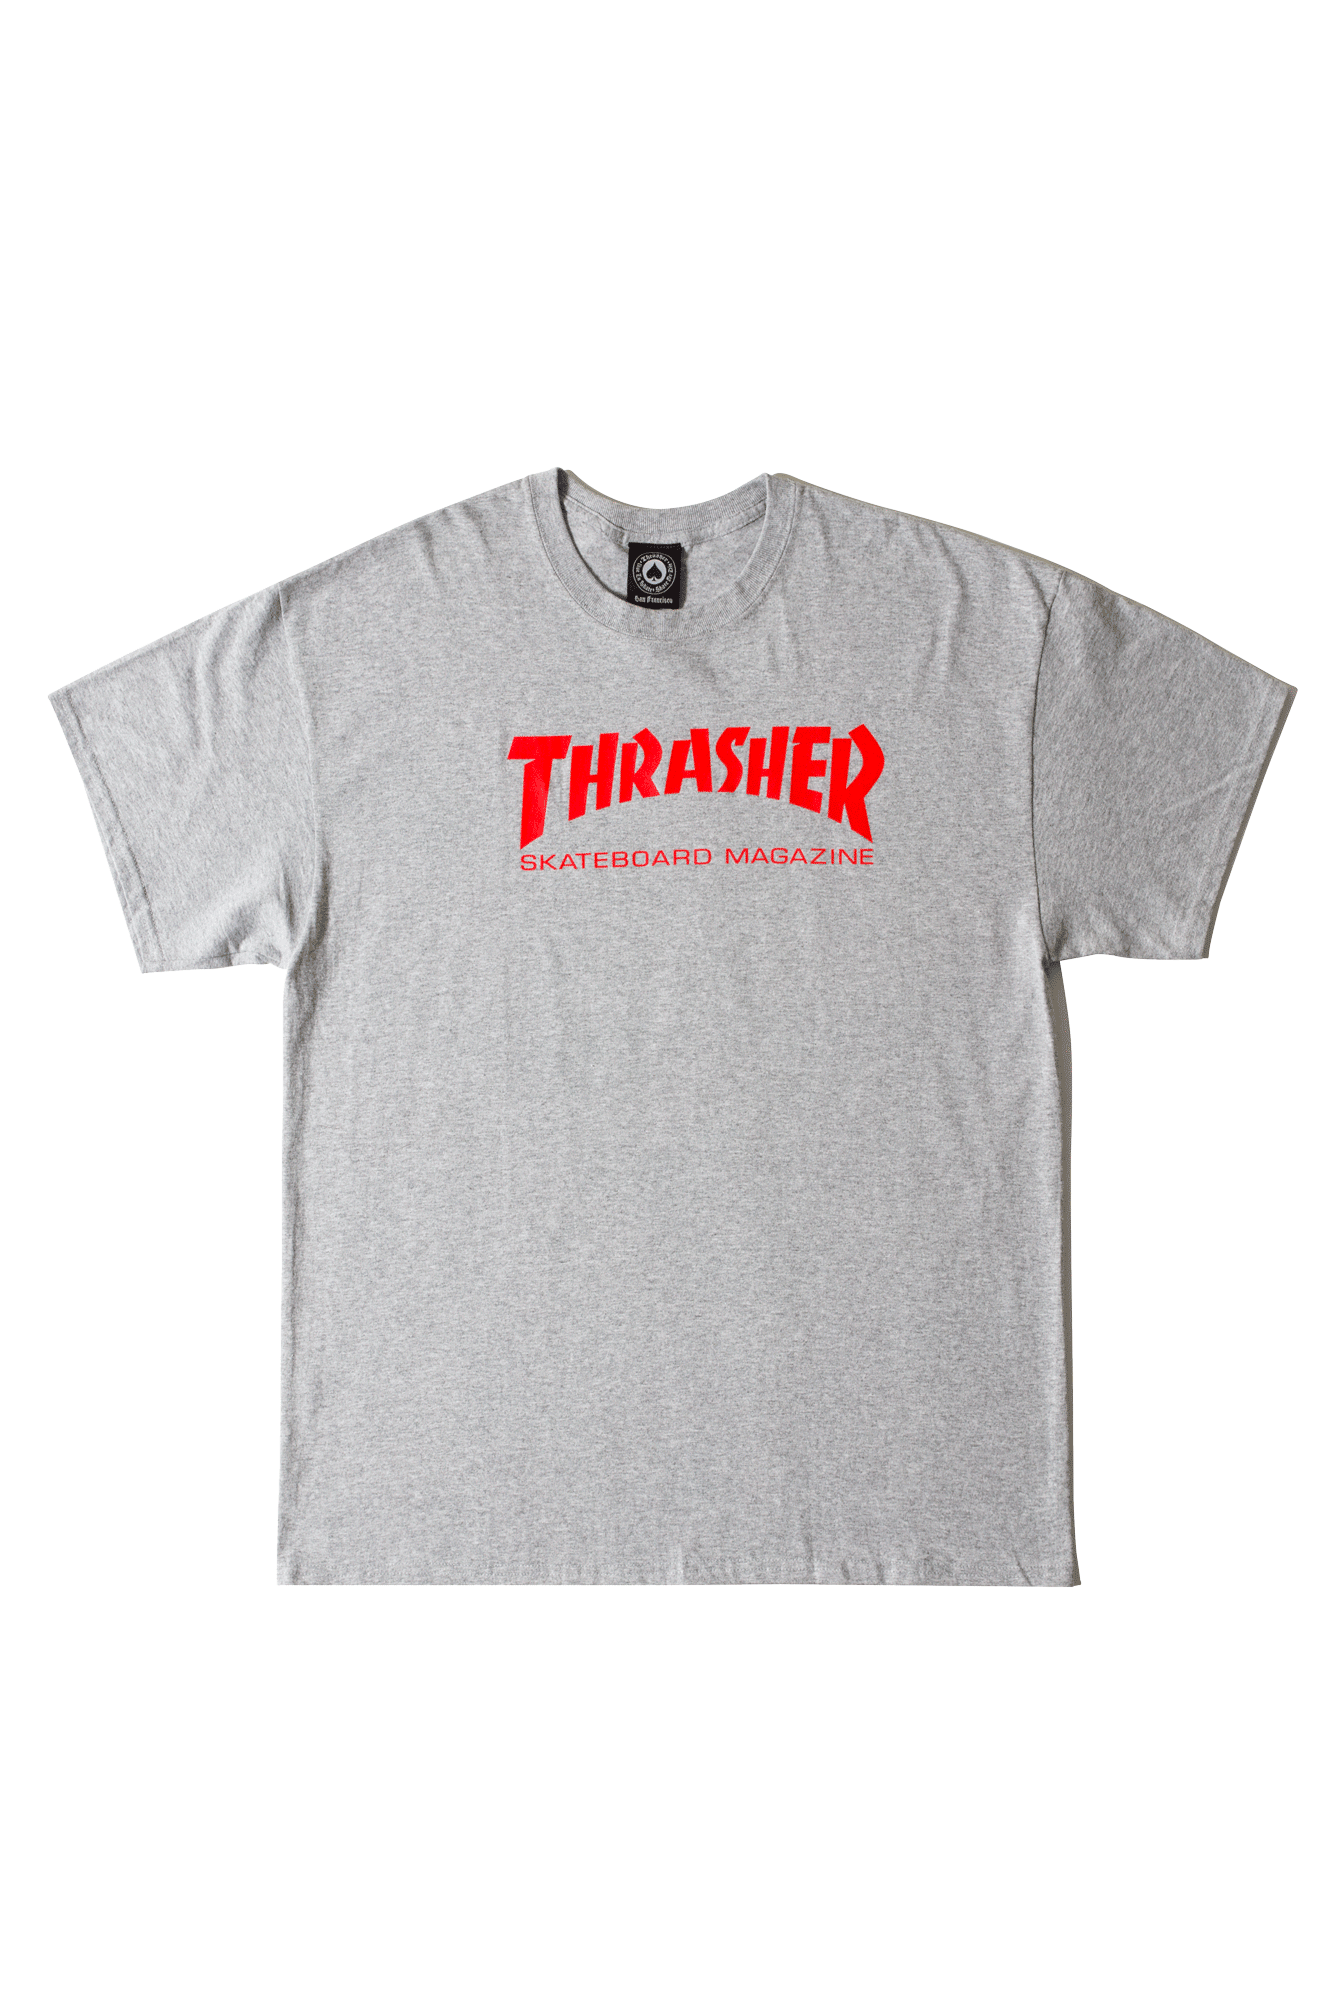 Thrasher T-Shirts Skate Mag Grey 311027#000#GREY#S - One Block Down